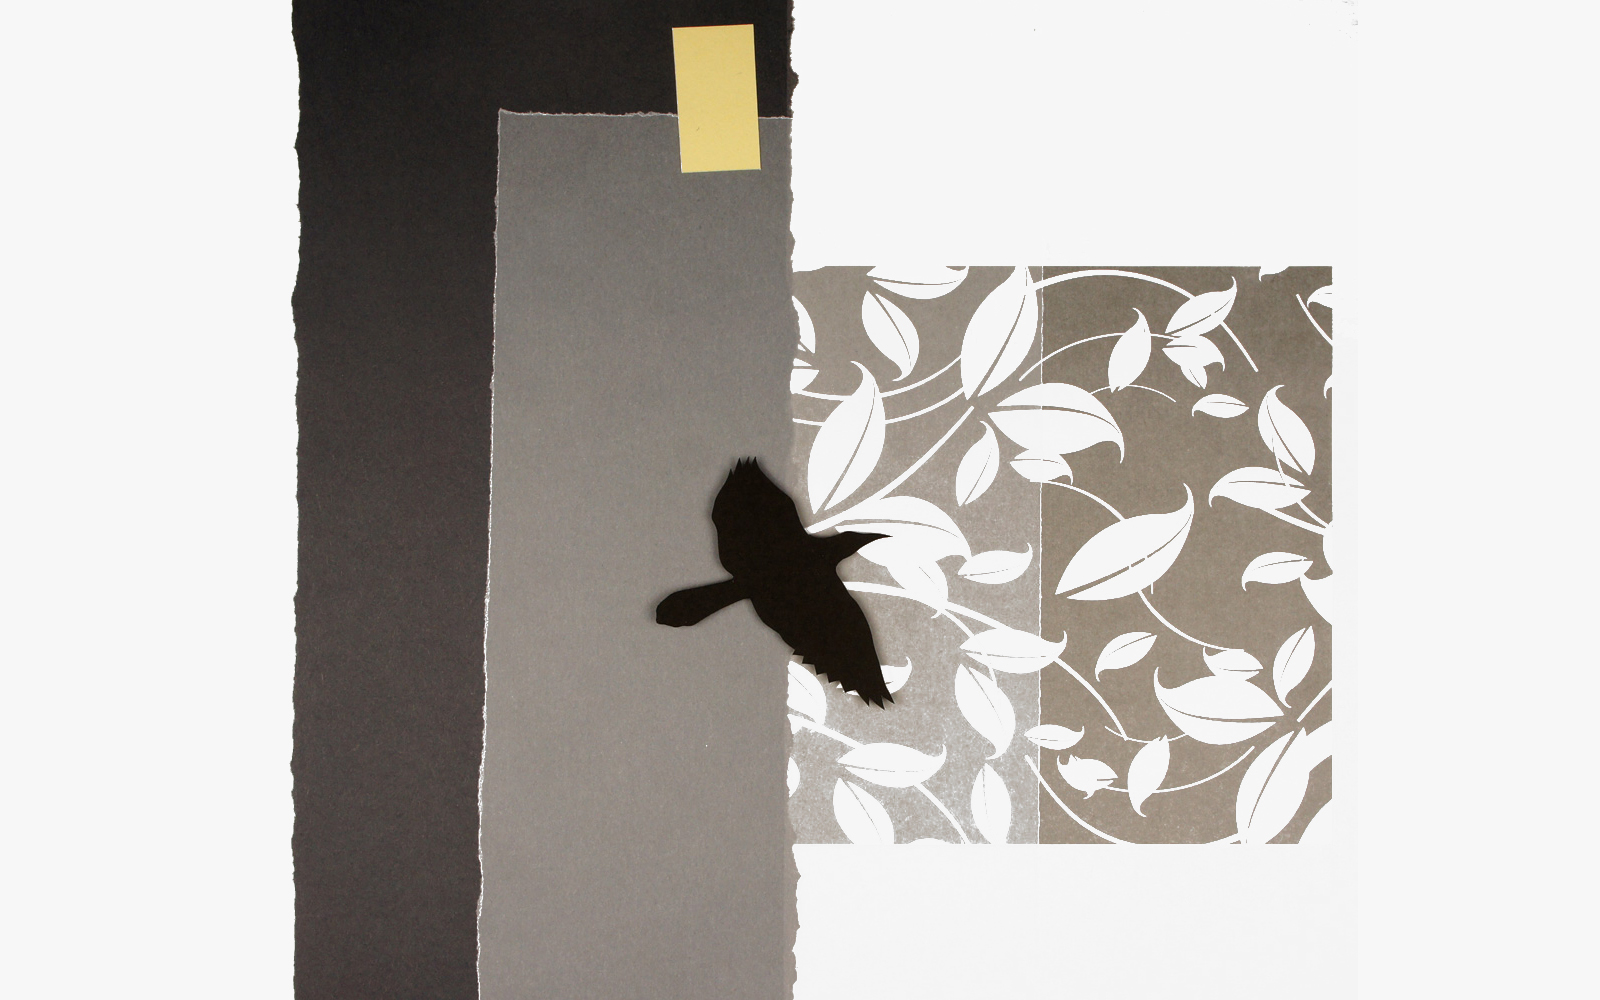 Night Flying, cut paper collage, Mike Tedder